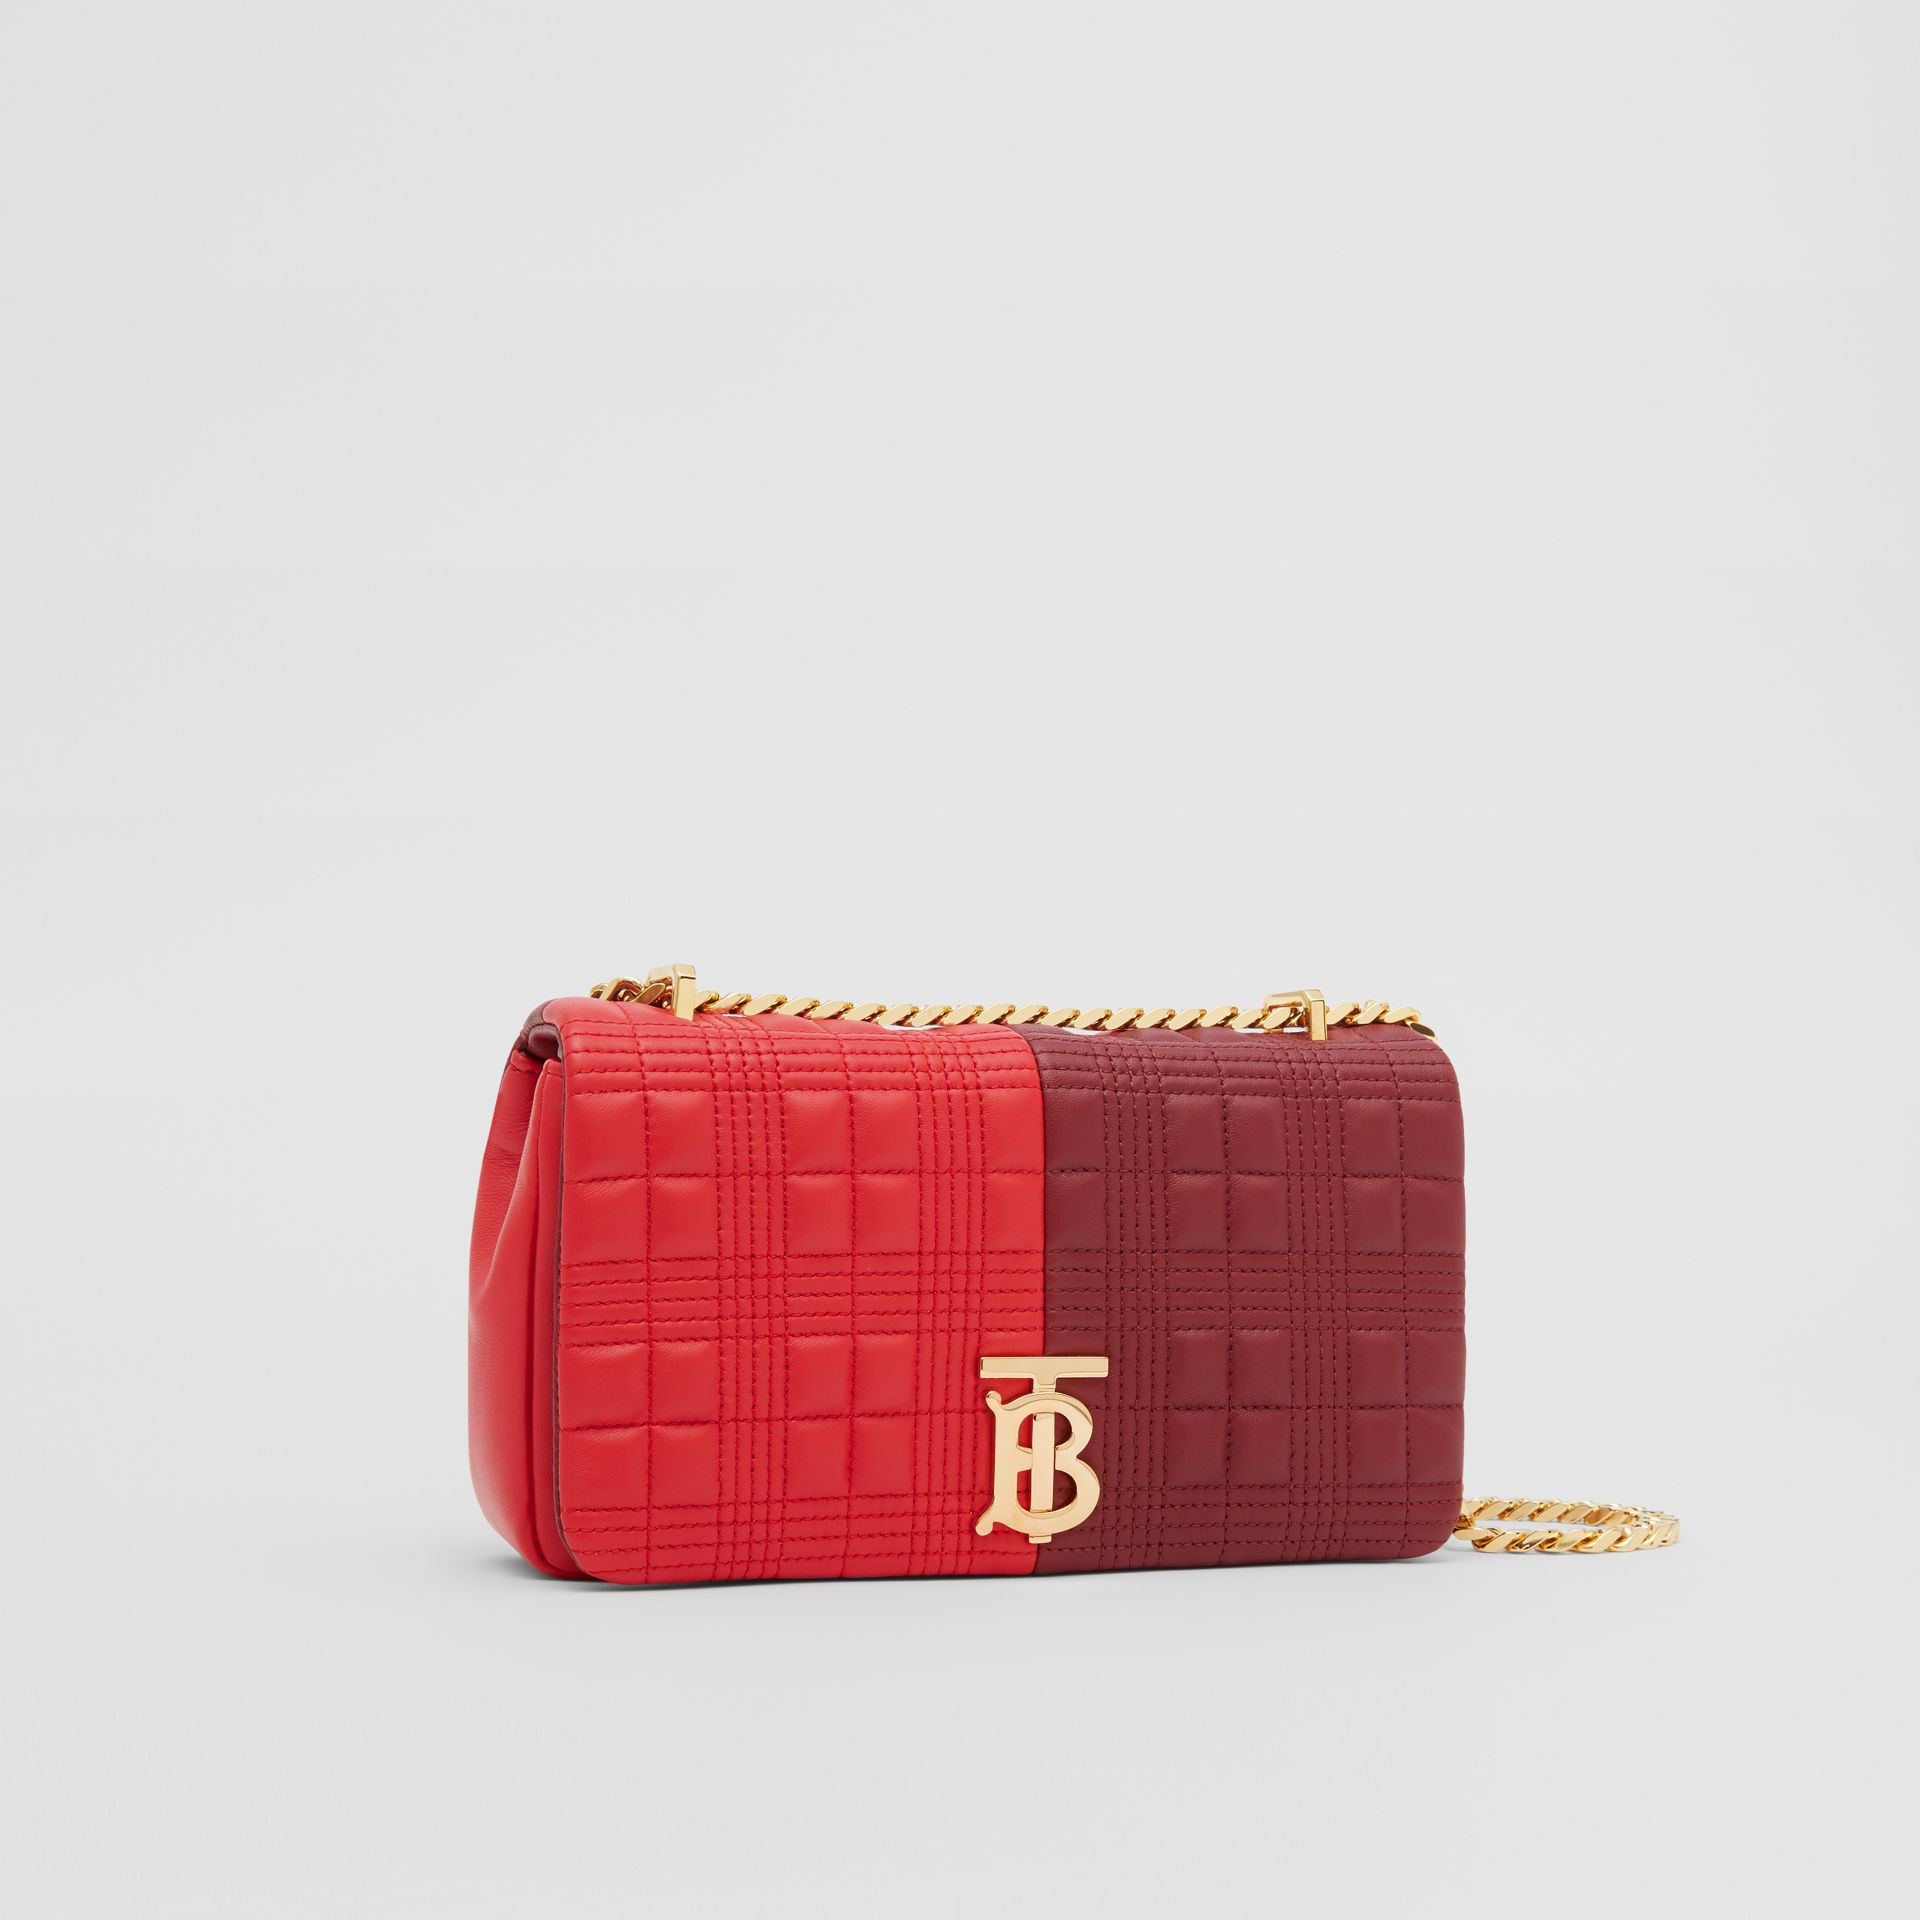 Small Quilted Colour Block Lambskin Lola Bag in Bright Red/burgundy - Women | Burberry Hong Kong S.A.R. - gallery image 6